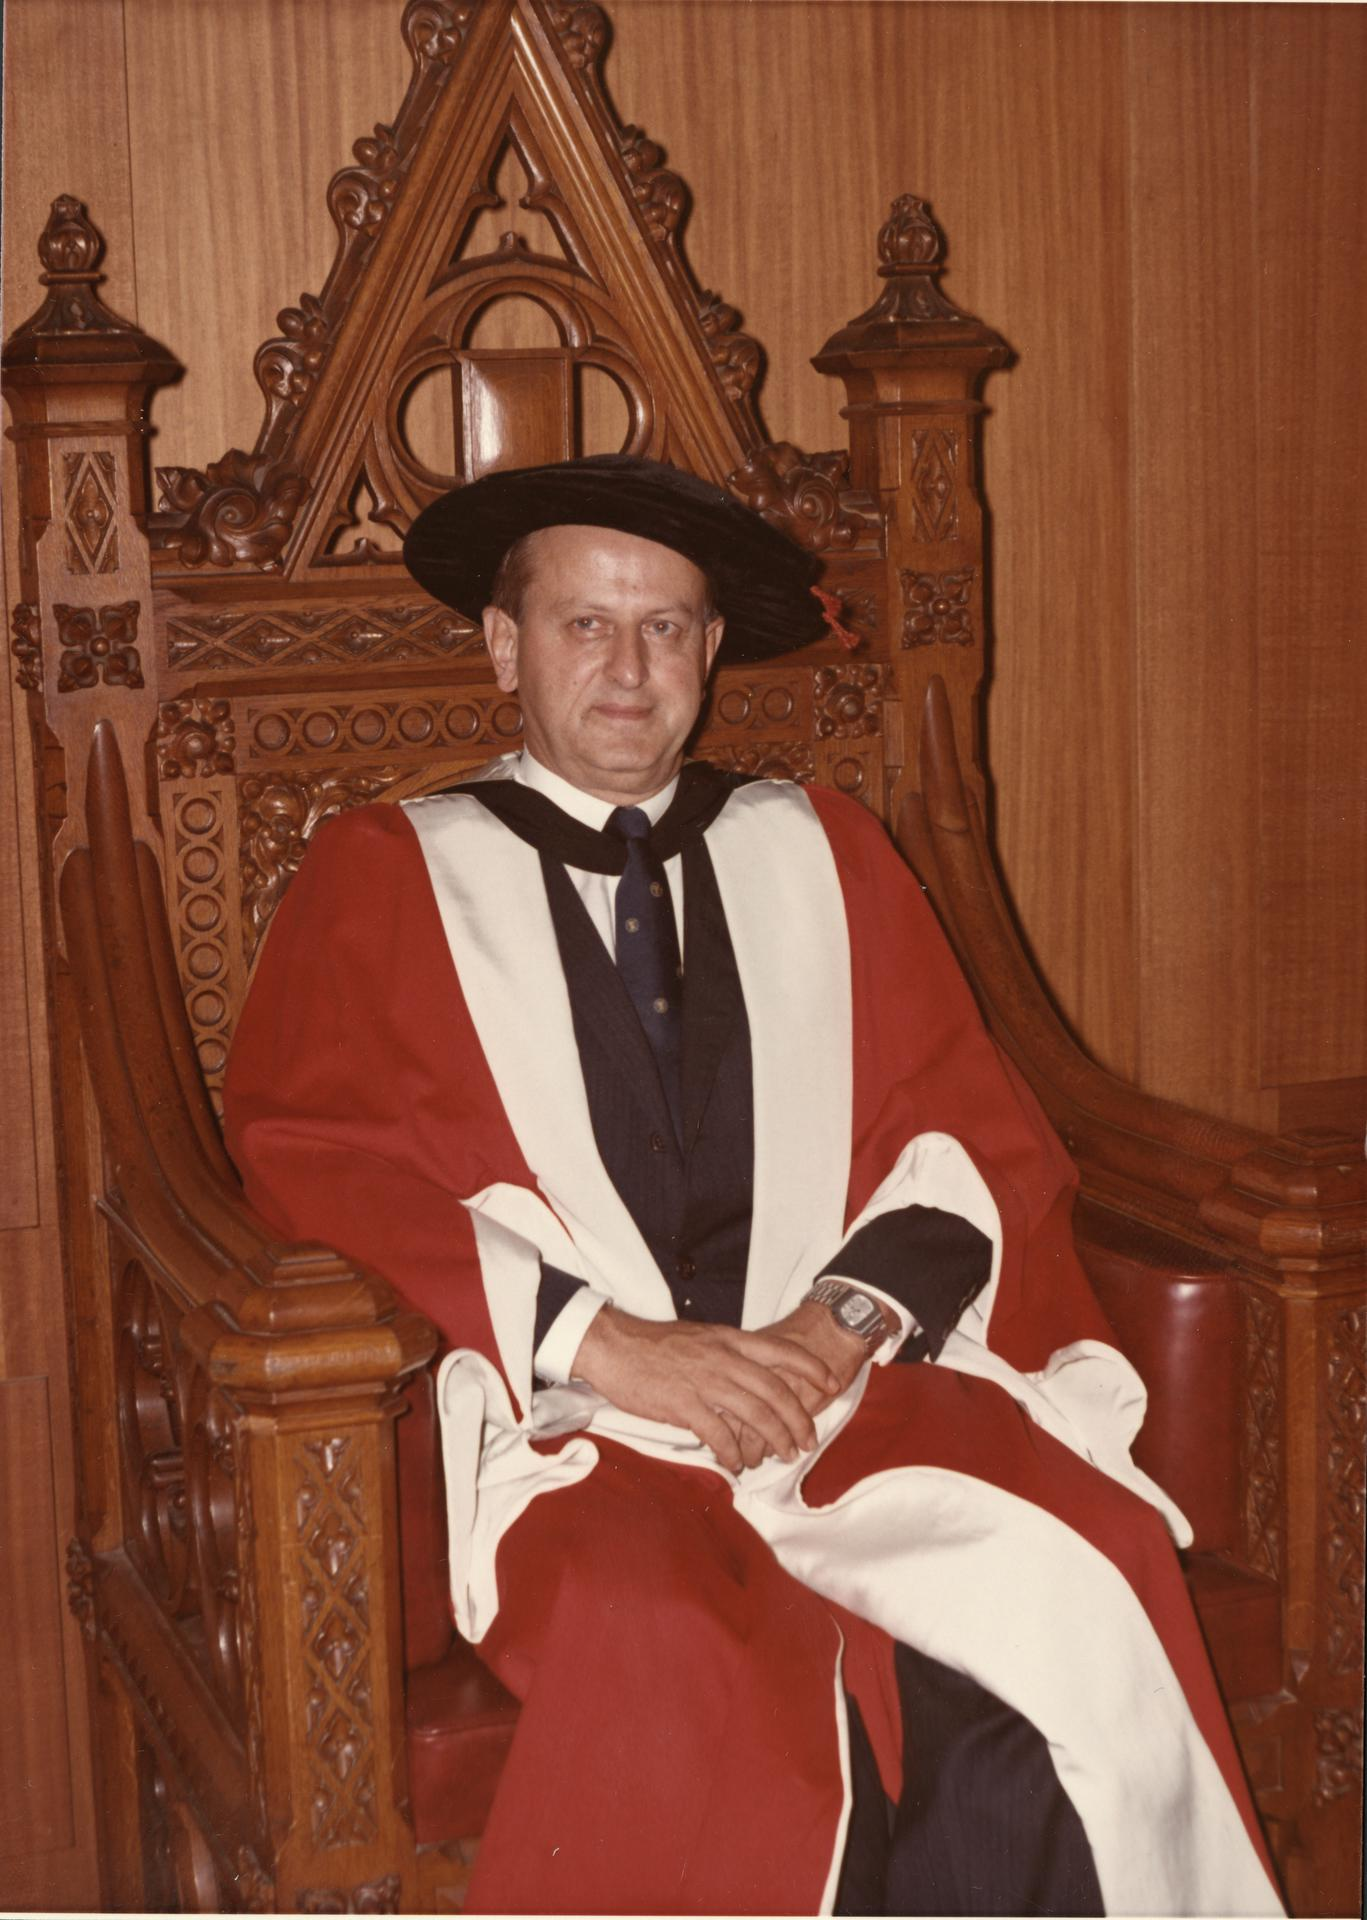 Professor F.J. Willett, 1973